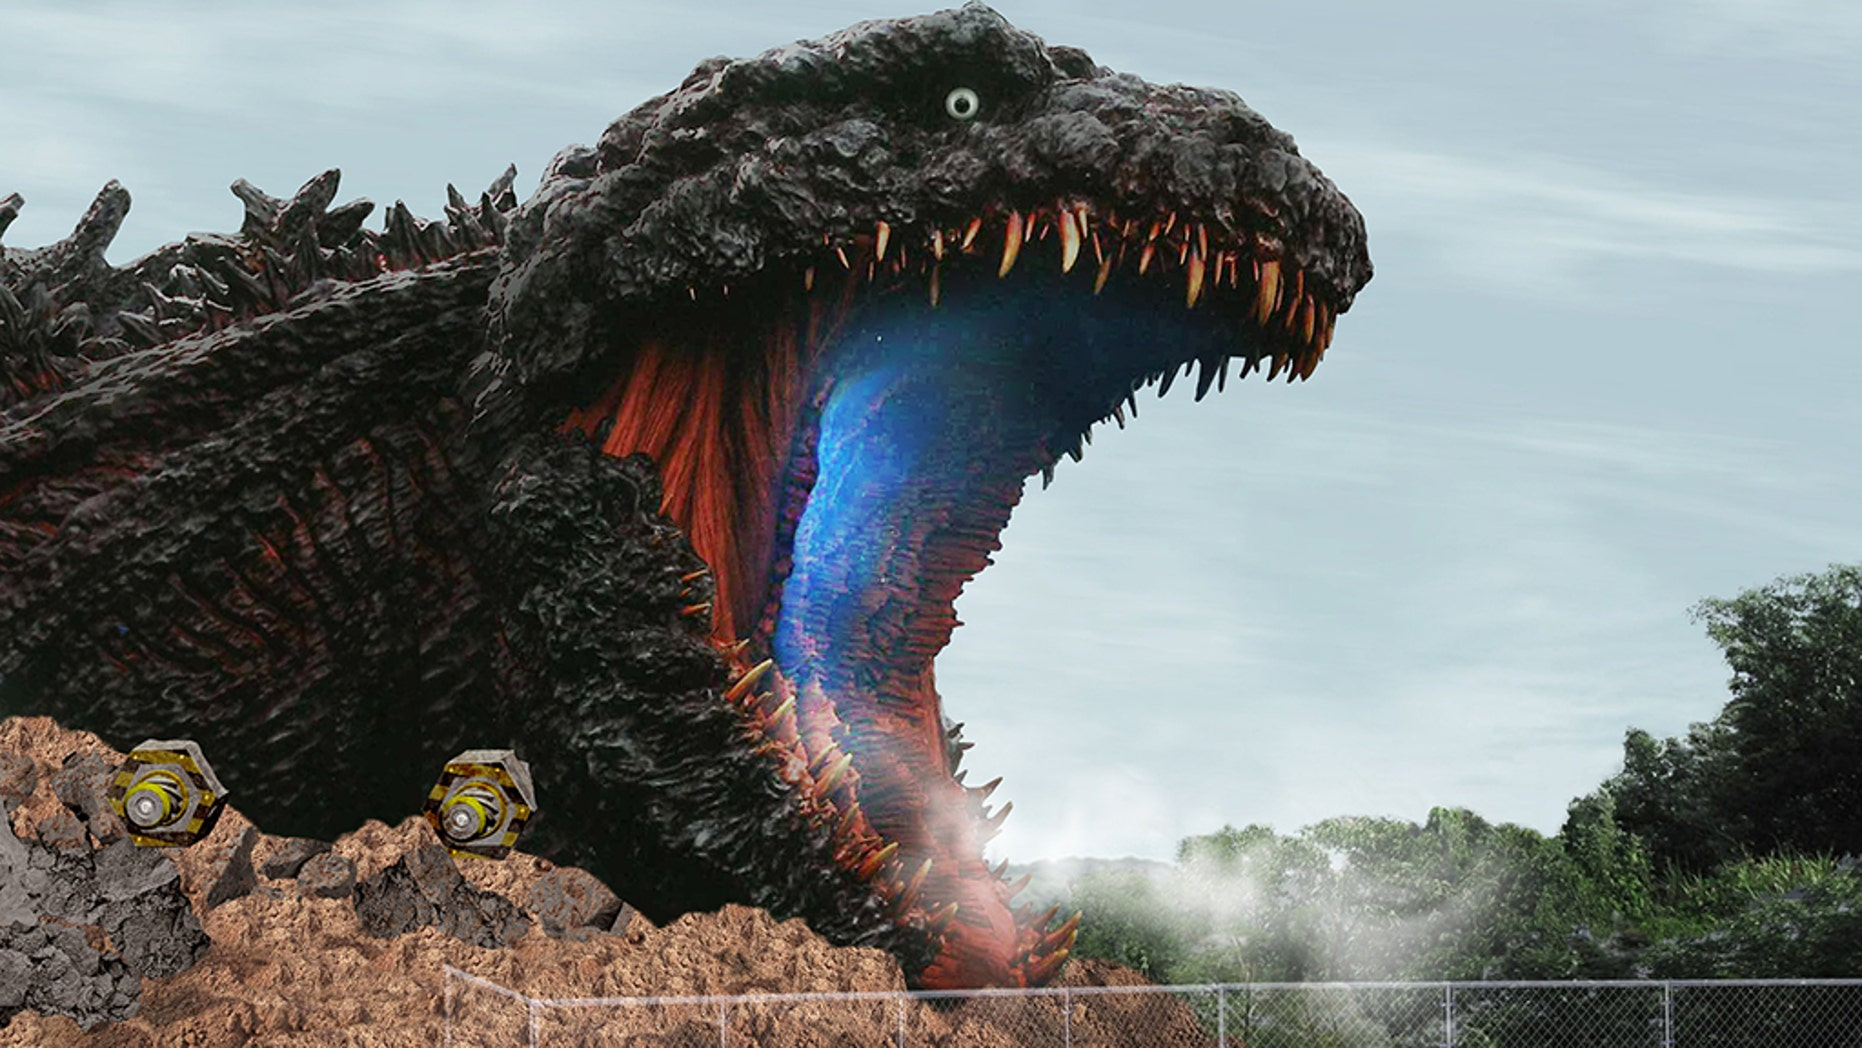 """et to debut in 2020, the Godzilla area — to be called """"Godzilla Interception Operation Awaji,"""" per the park's website — will feature a zip line that will """"rush into the body of Godzilla"""" as well as shooting galleries for allowing guests to take aim at Godzilla's radioactive cells."""